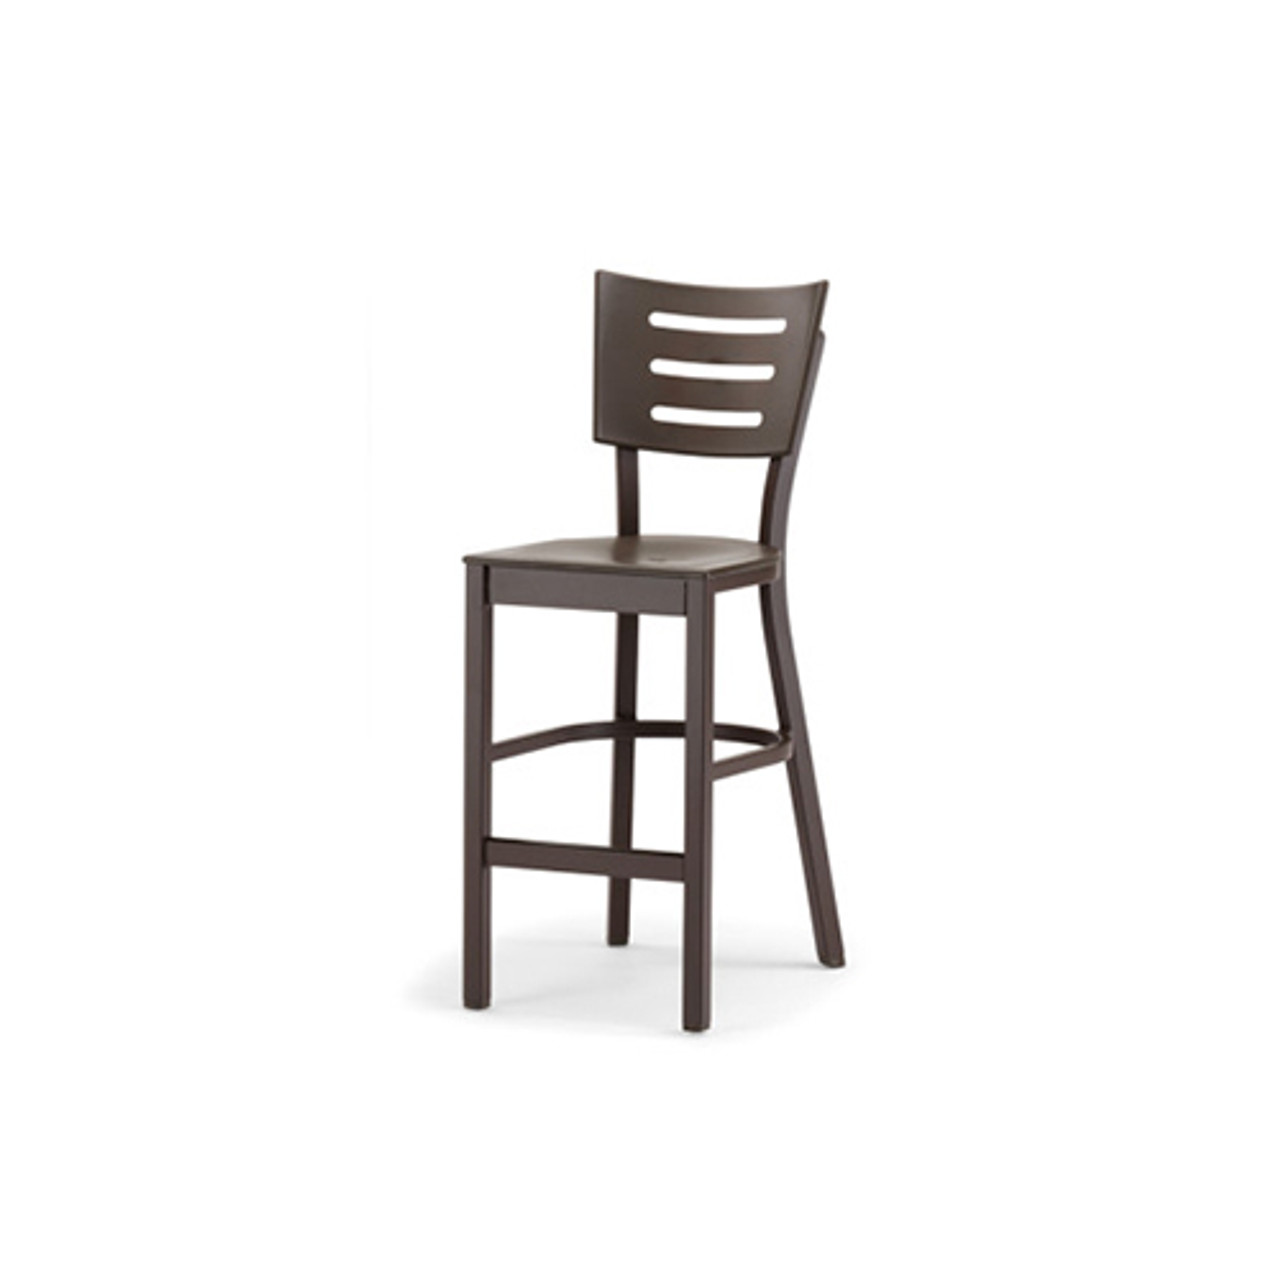 Avant Stacking Balcony Height Armless Chair Southern